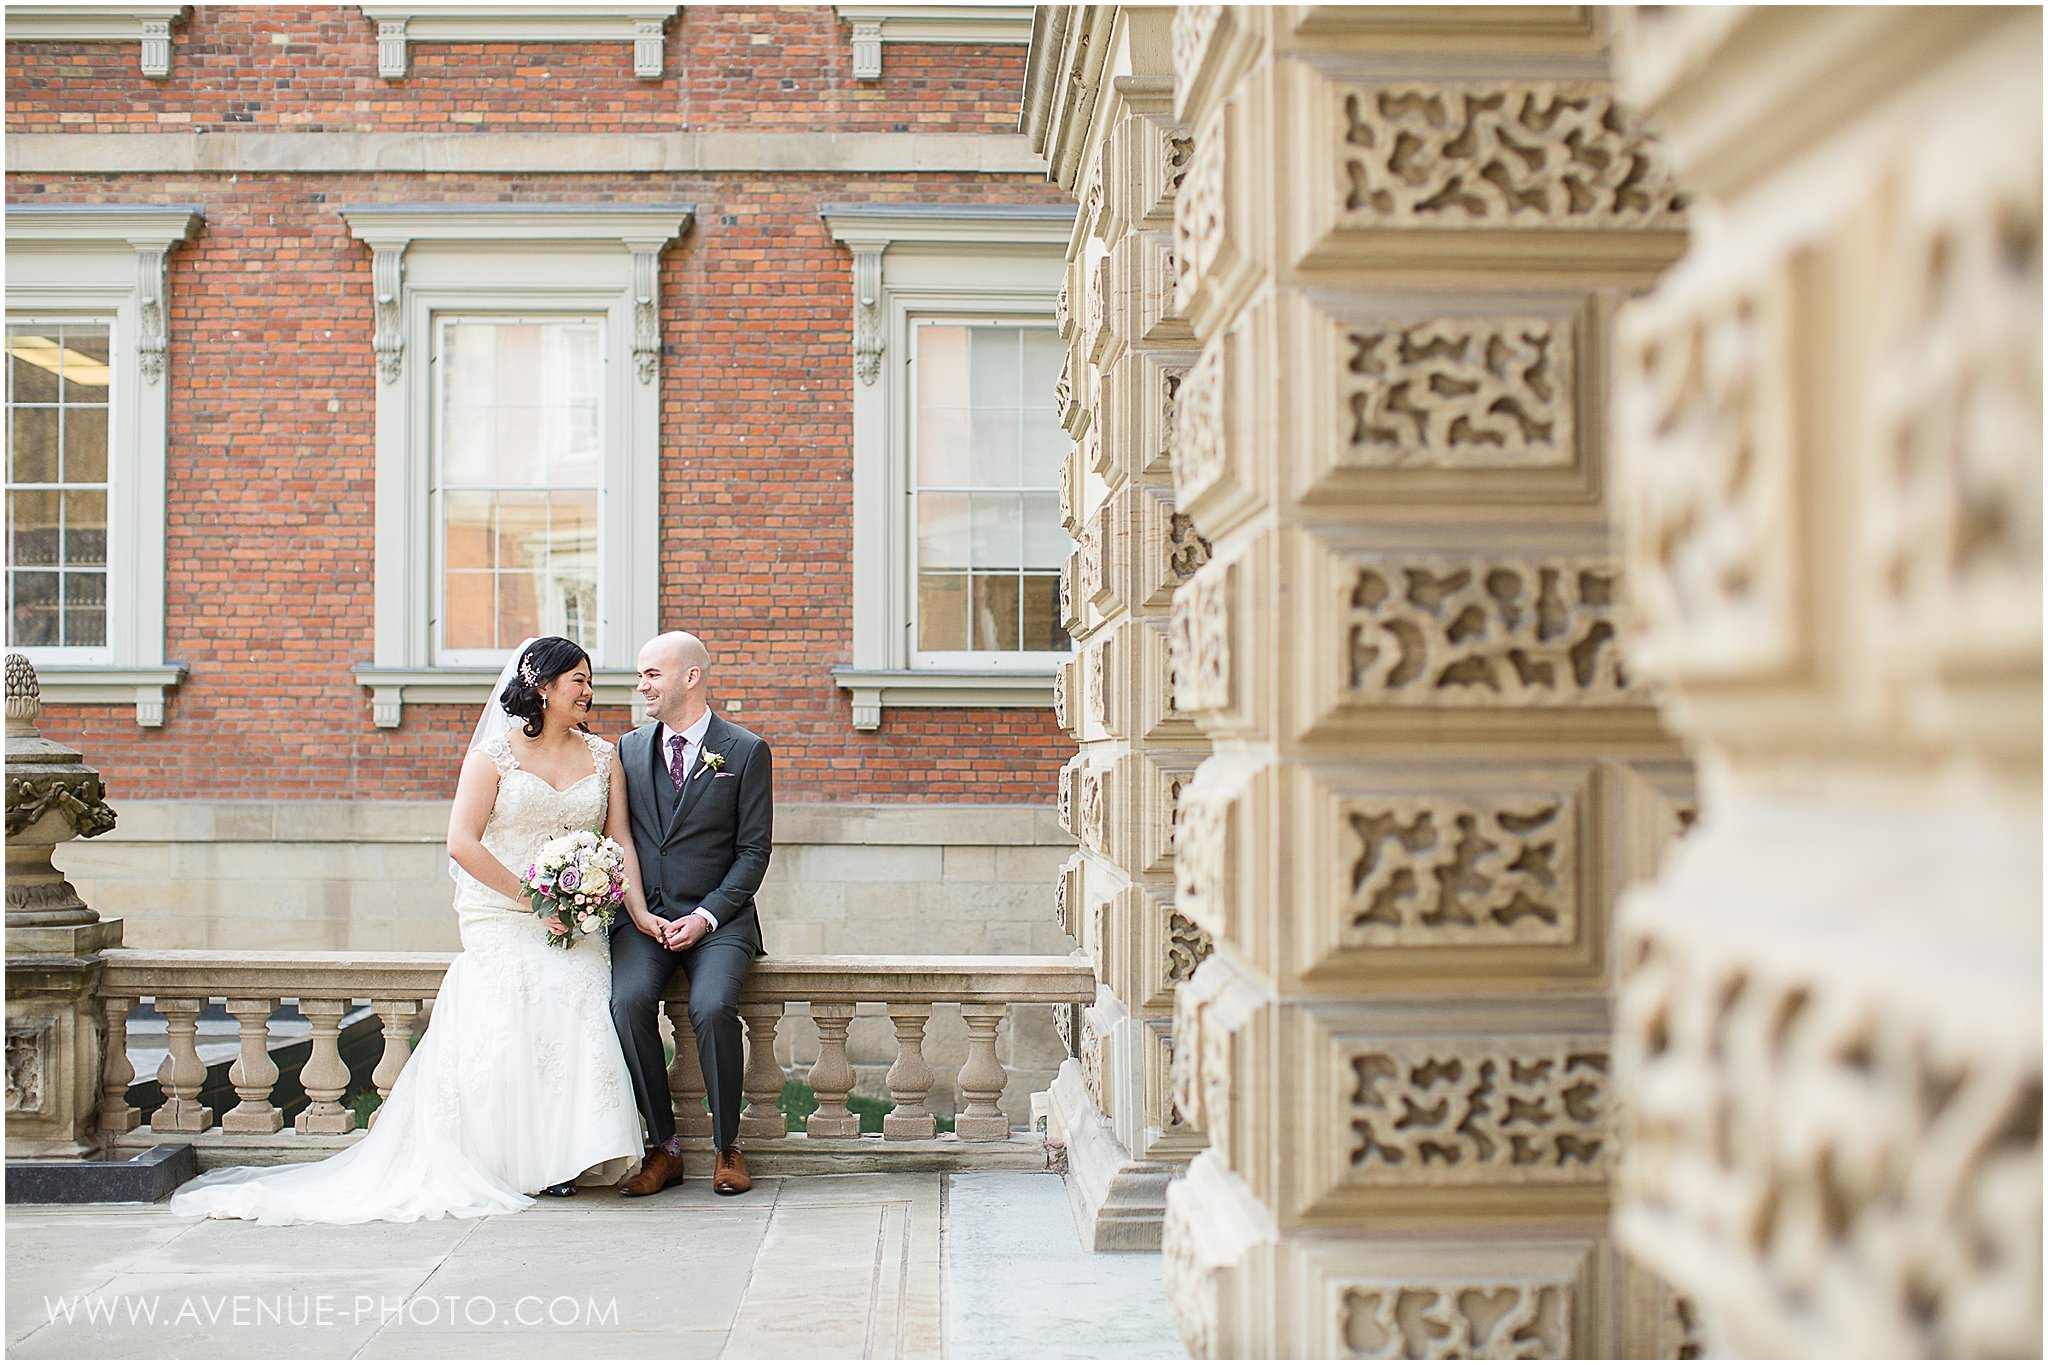 Osgoode Hall and Eglinton Grand Spring Wedding inspired by La La Land and Old Hollywood